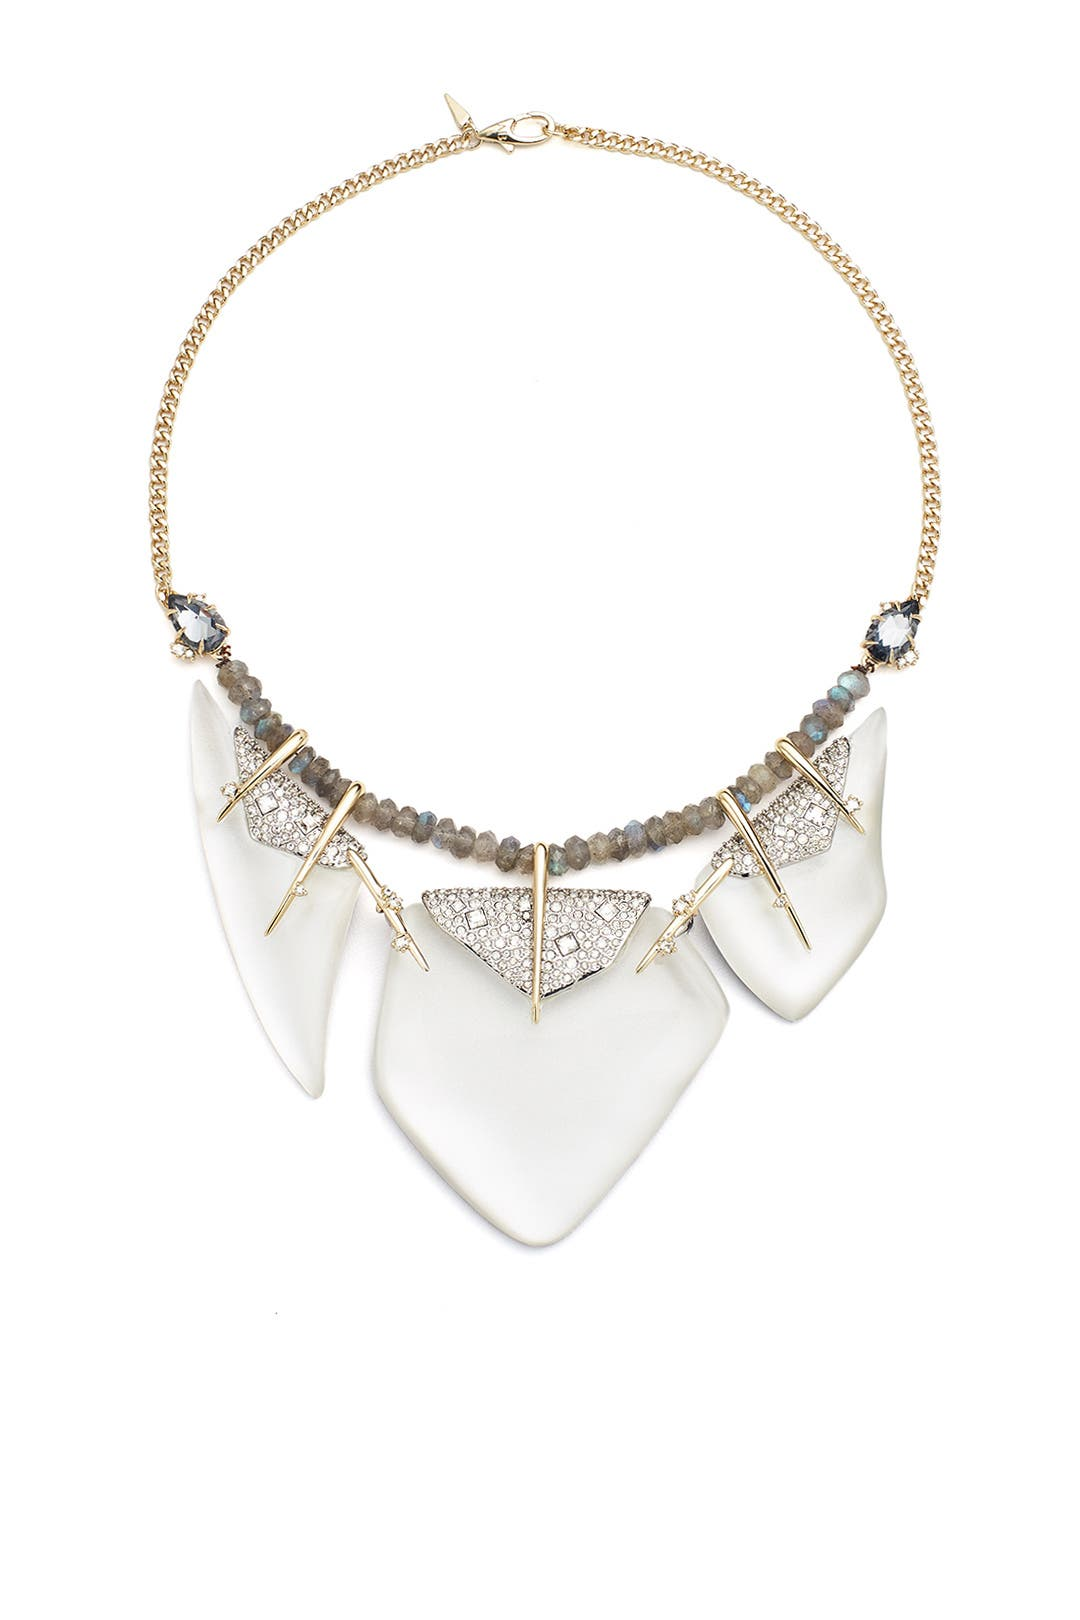 shop designers gold the for bittar stone alexis by necklace rent runway ash